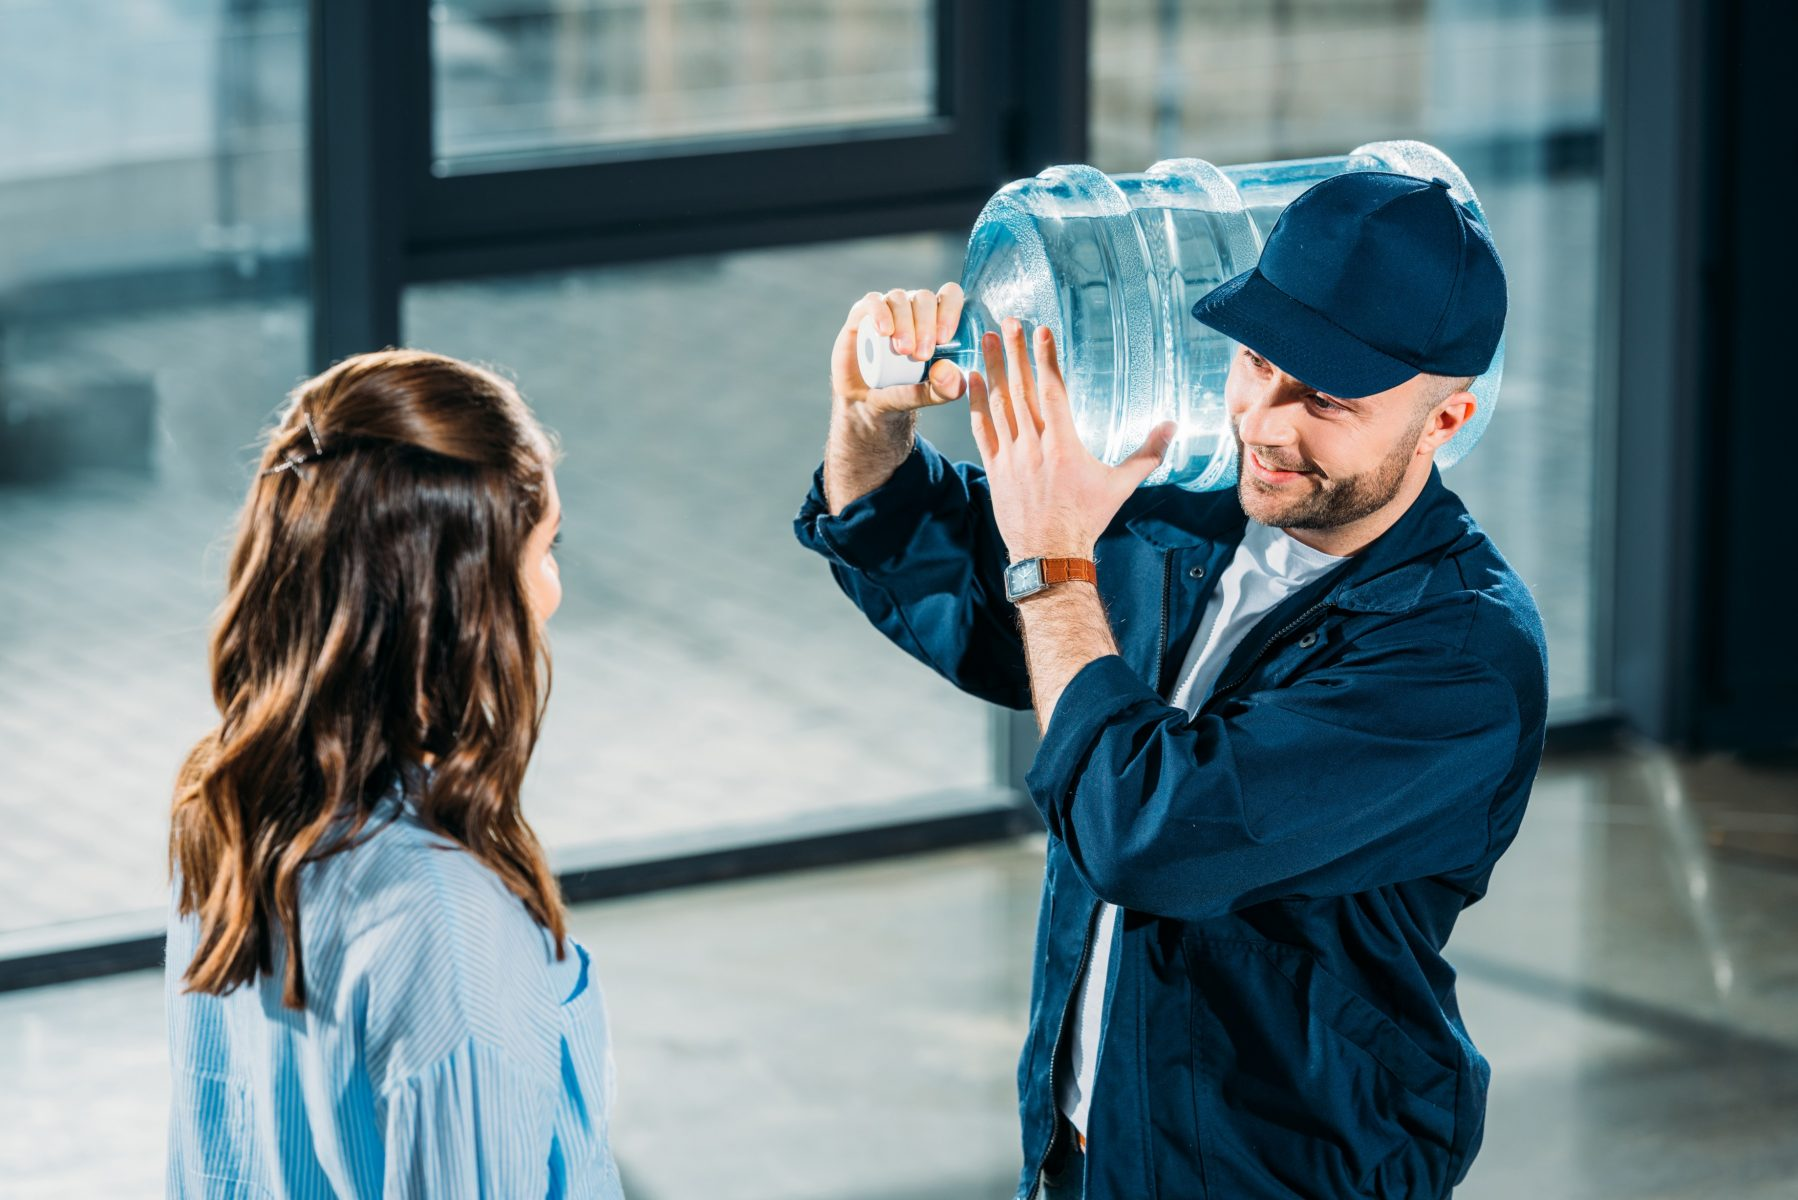 Bottled water options in Tulsa